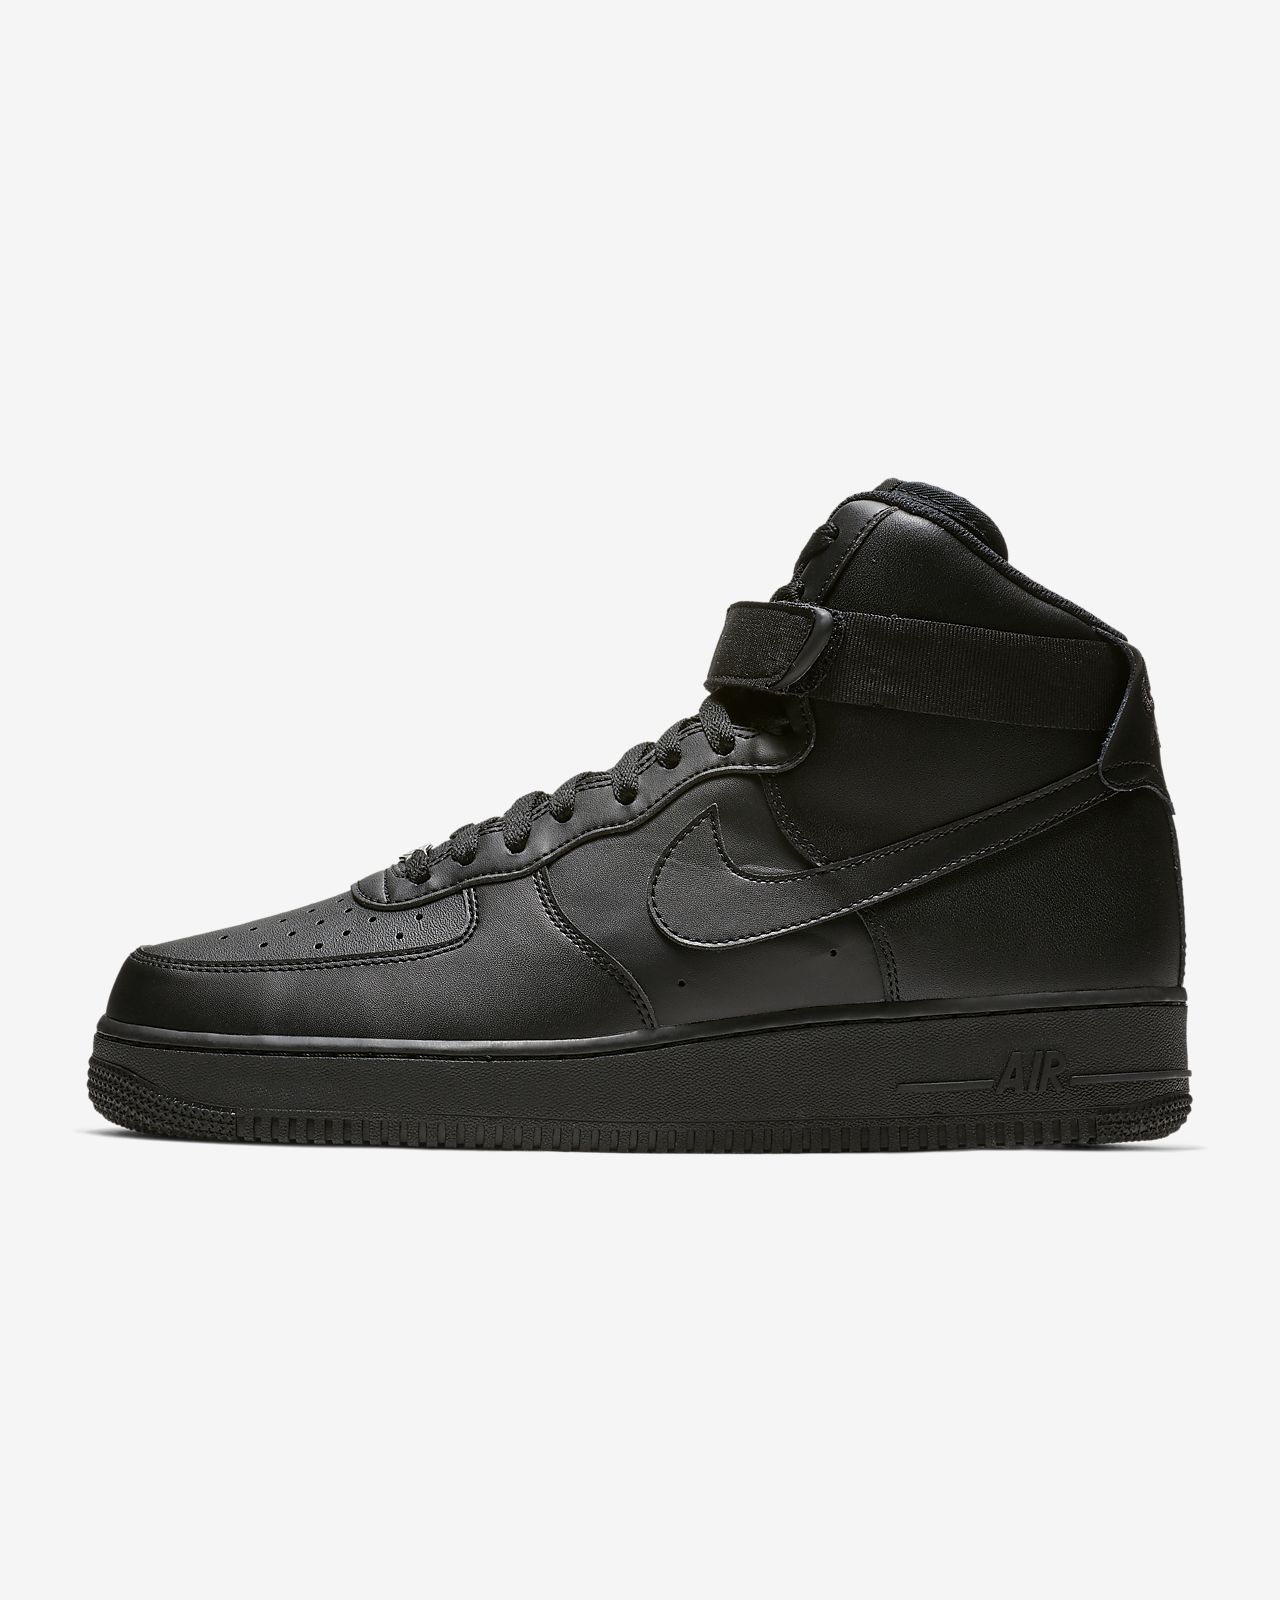 promo code 6e66a a891c ... Nike Air Force 1 High 07 Men s Shoe